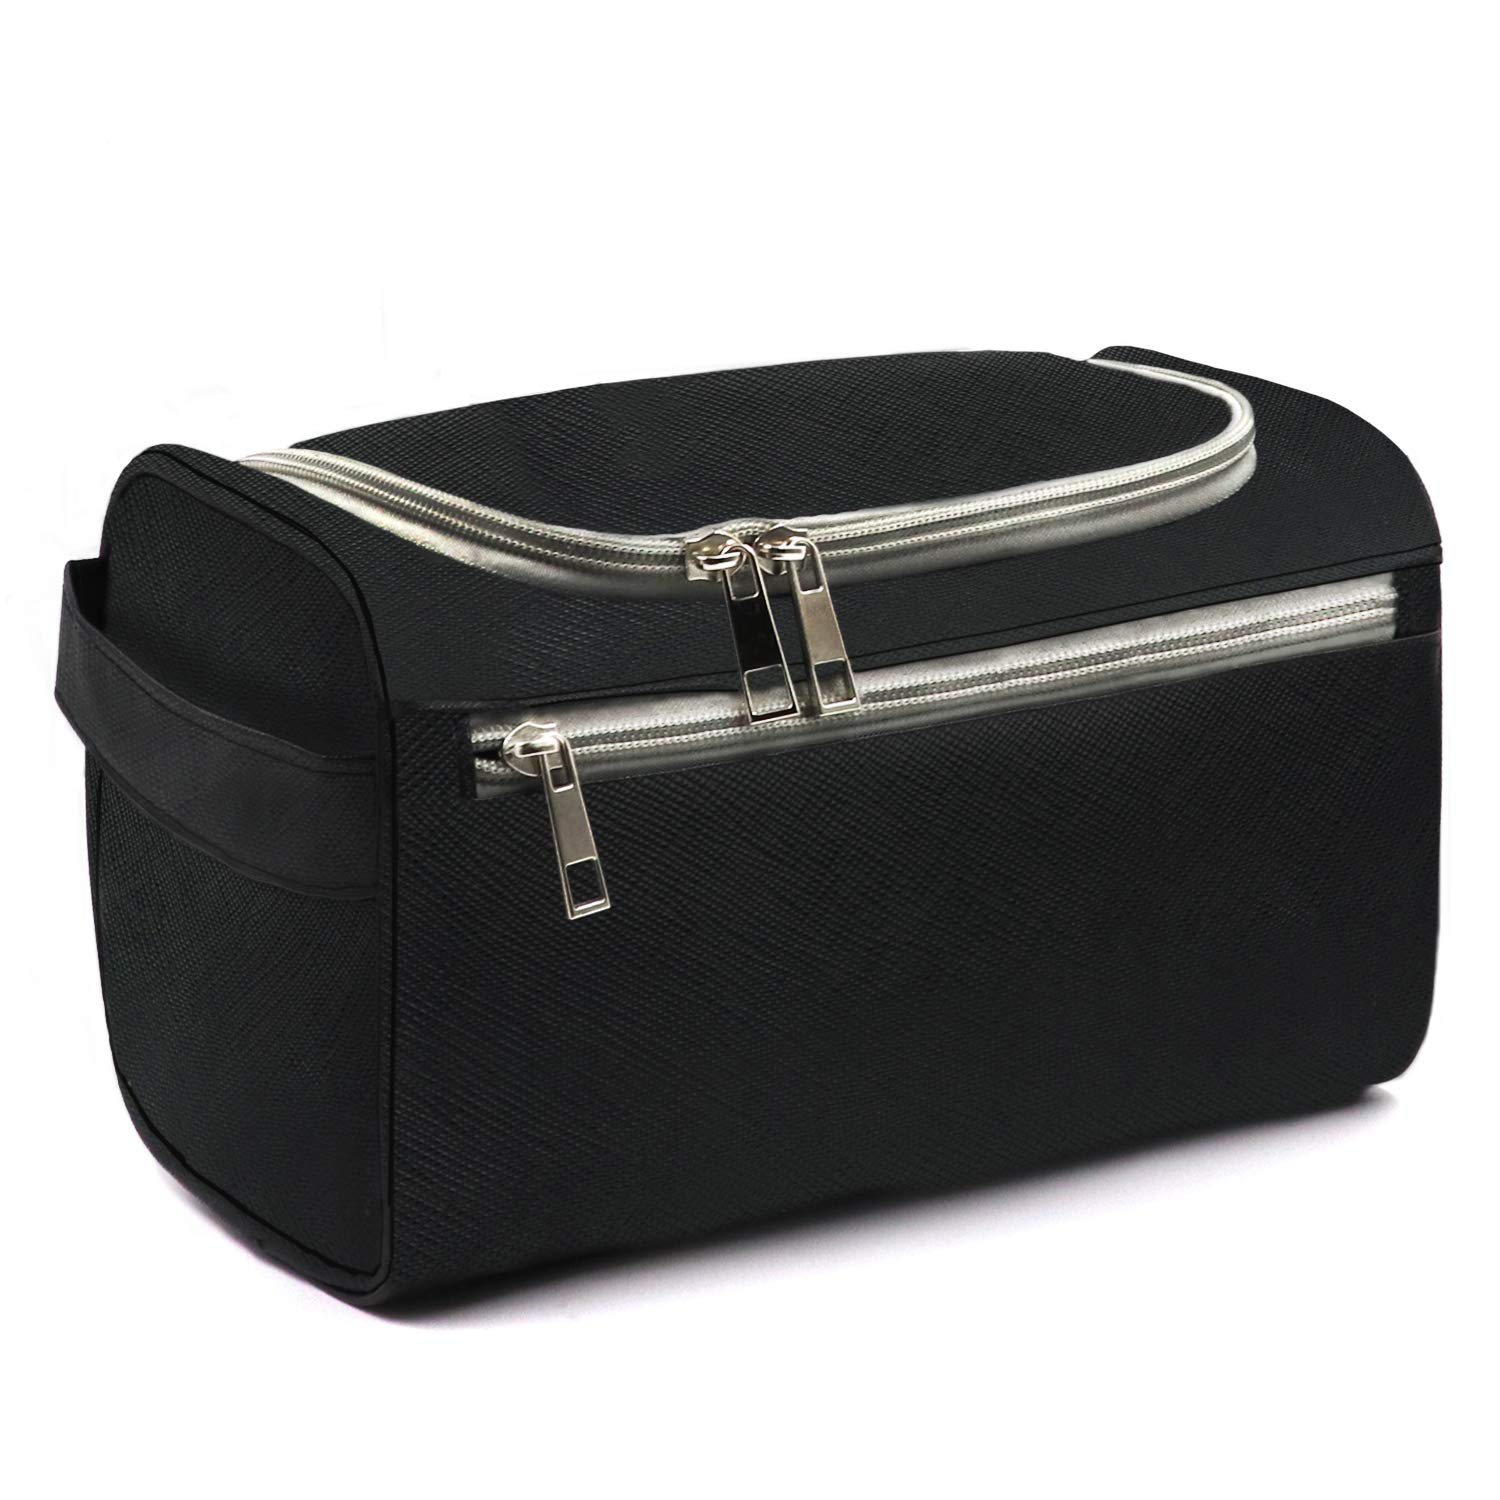 9b98b68dbce7 Best Rated in Cosmetic Bags   Helpful Customer Reviews - Amazon.com